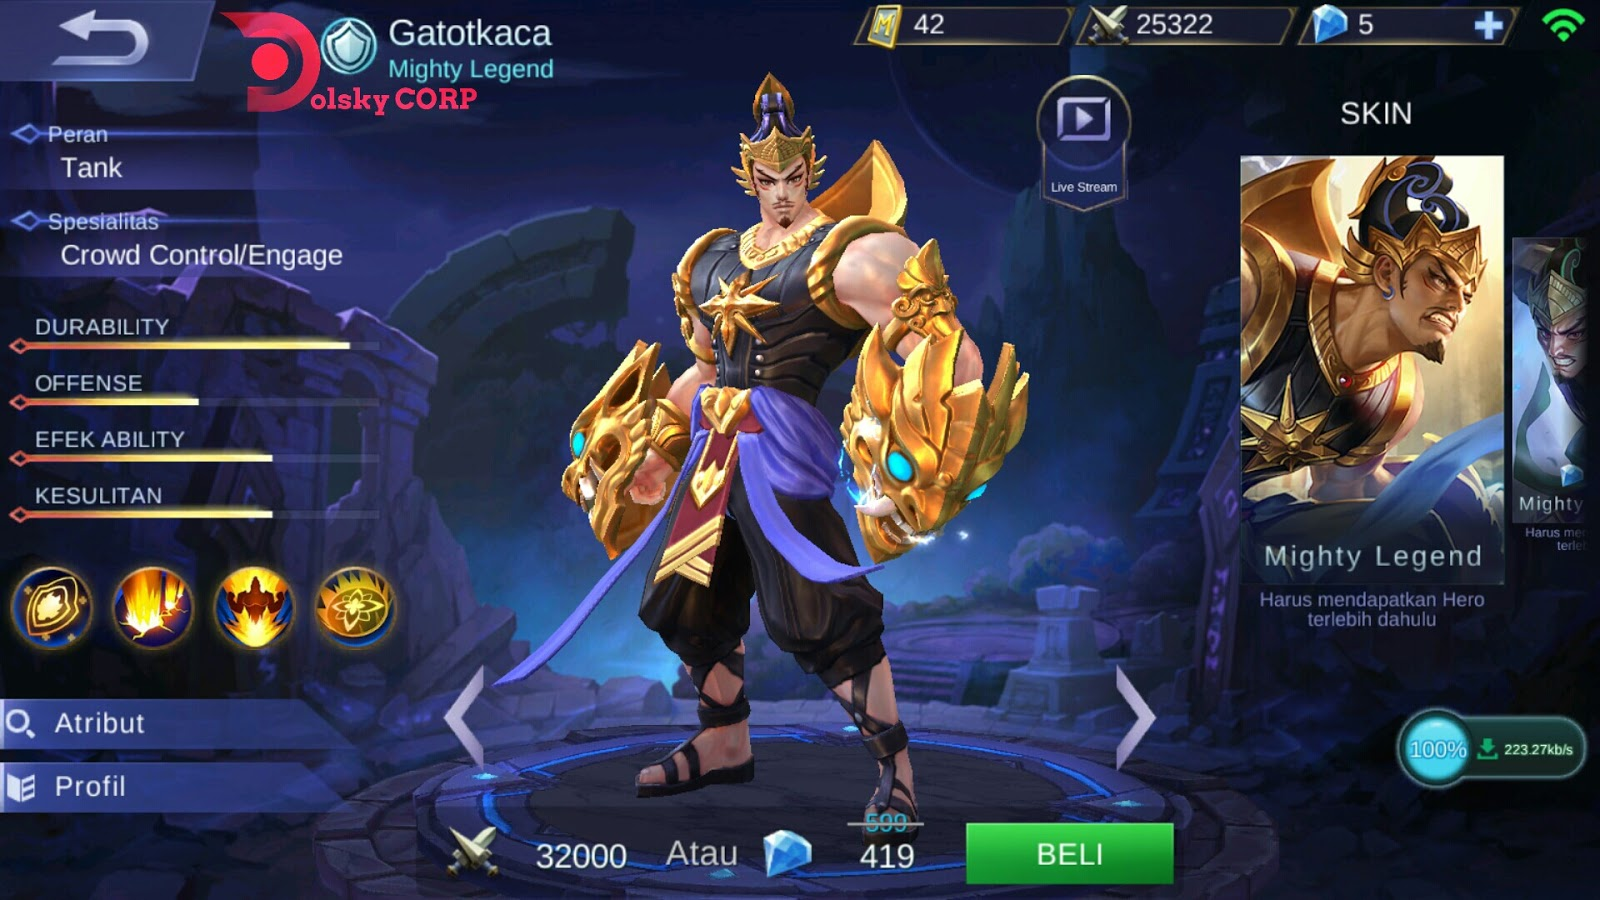 Gear Gatot Kaca Magic